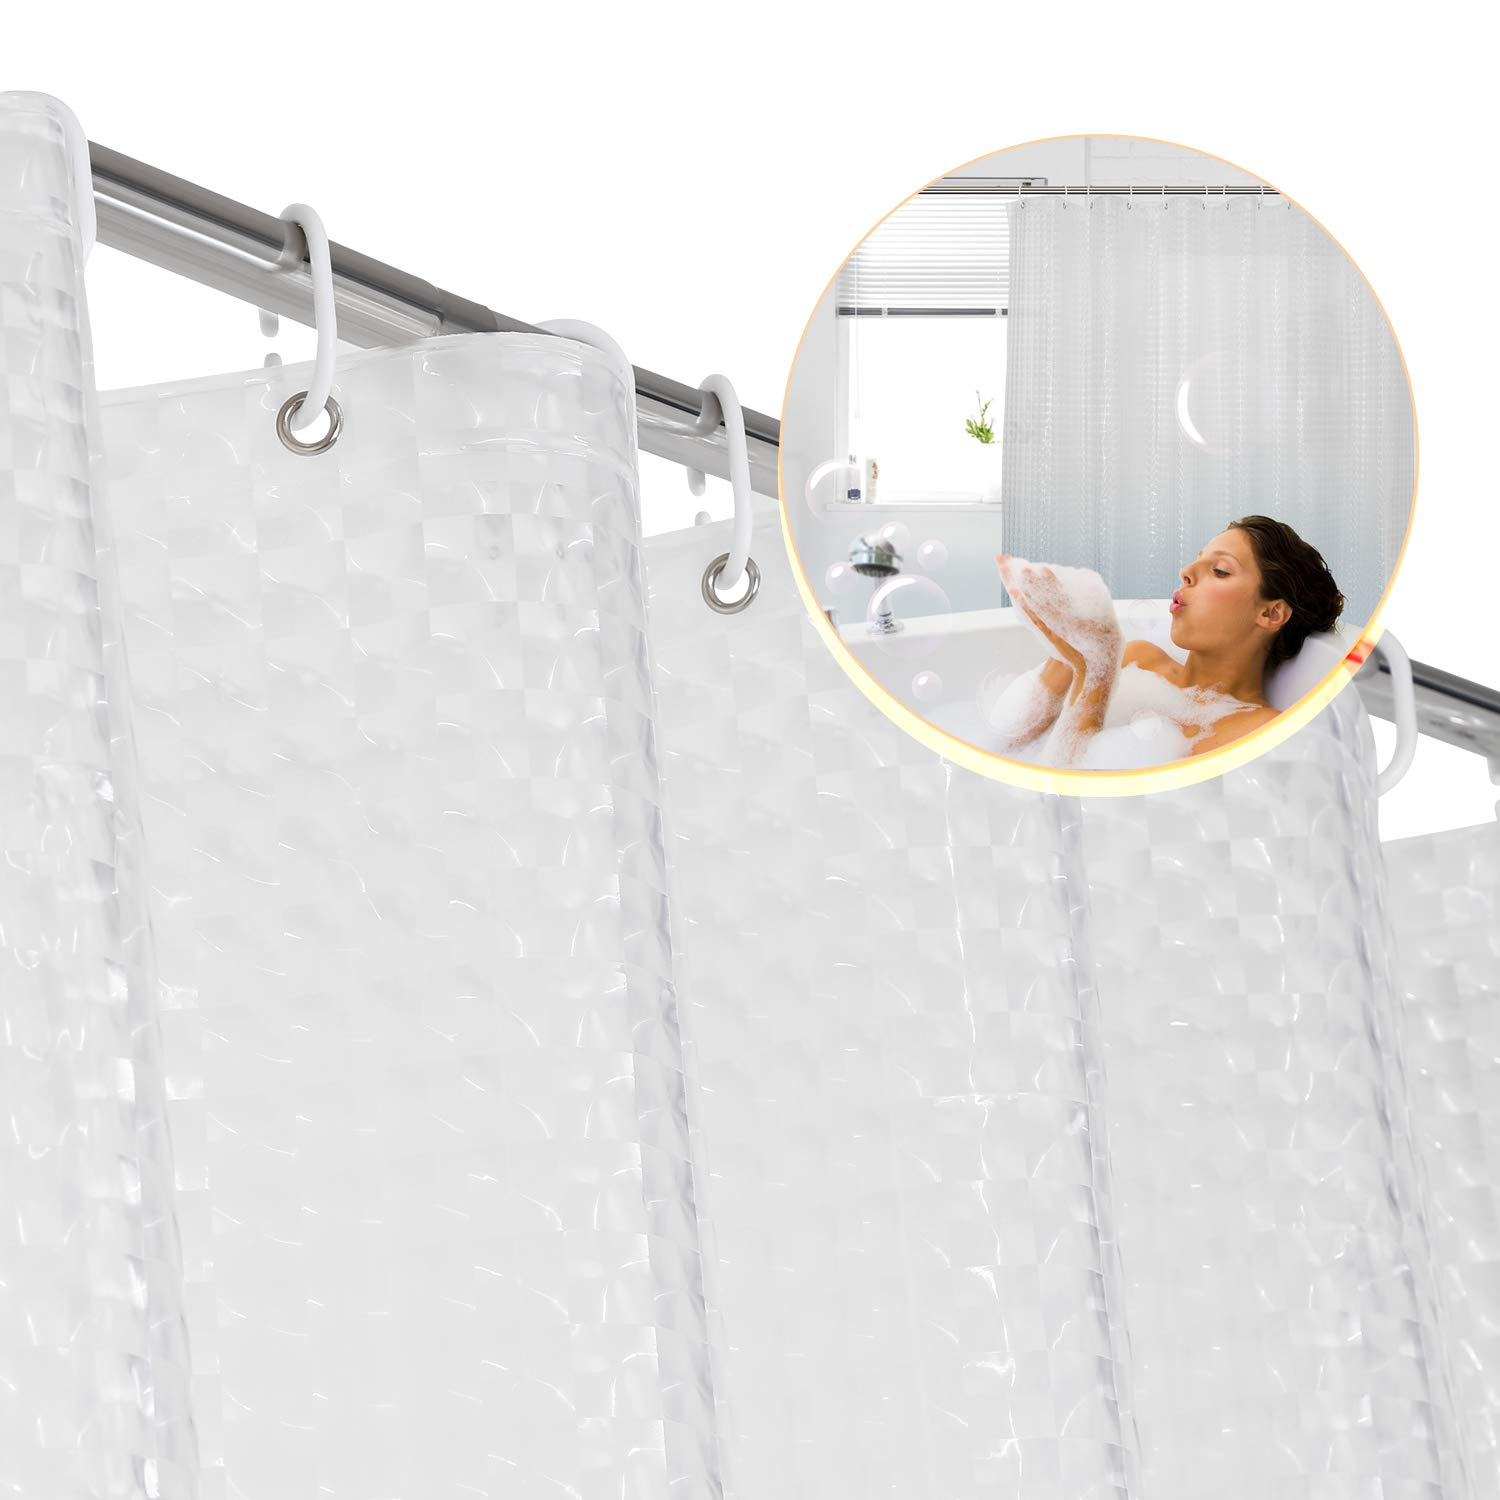 FITNATE Eco-Friendly PEVA Shower Curtain Liner, 72x72 3D,0.15 MM - Non Toxic, , No Chemical Odor, Rust Proof Grommets with Plastic Curtain Hook (3D Crystal Pattern Clear)